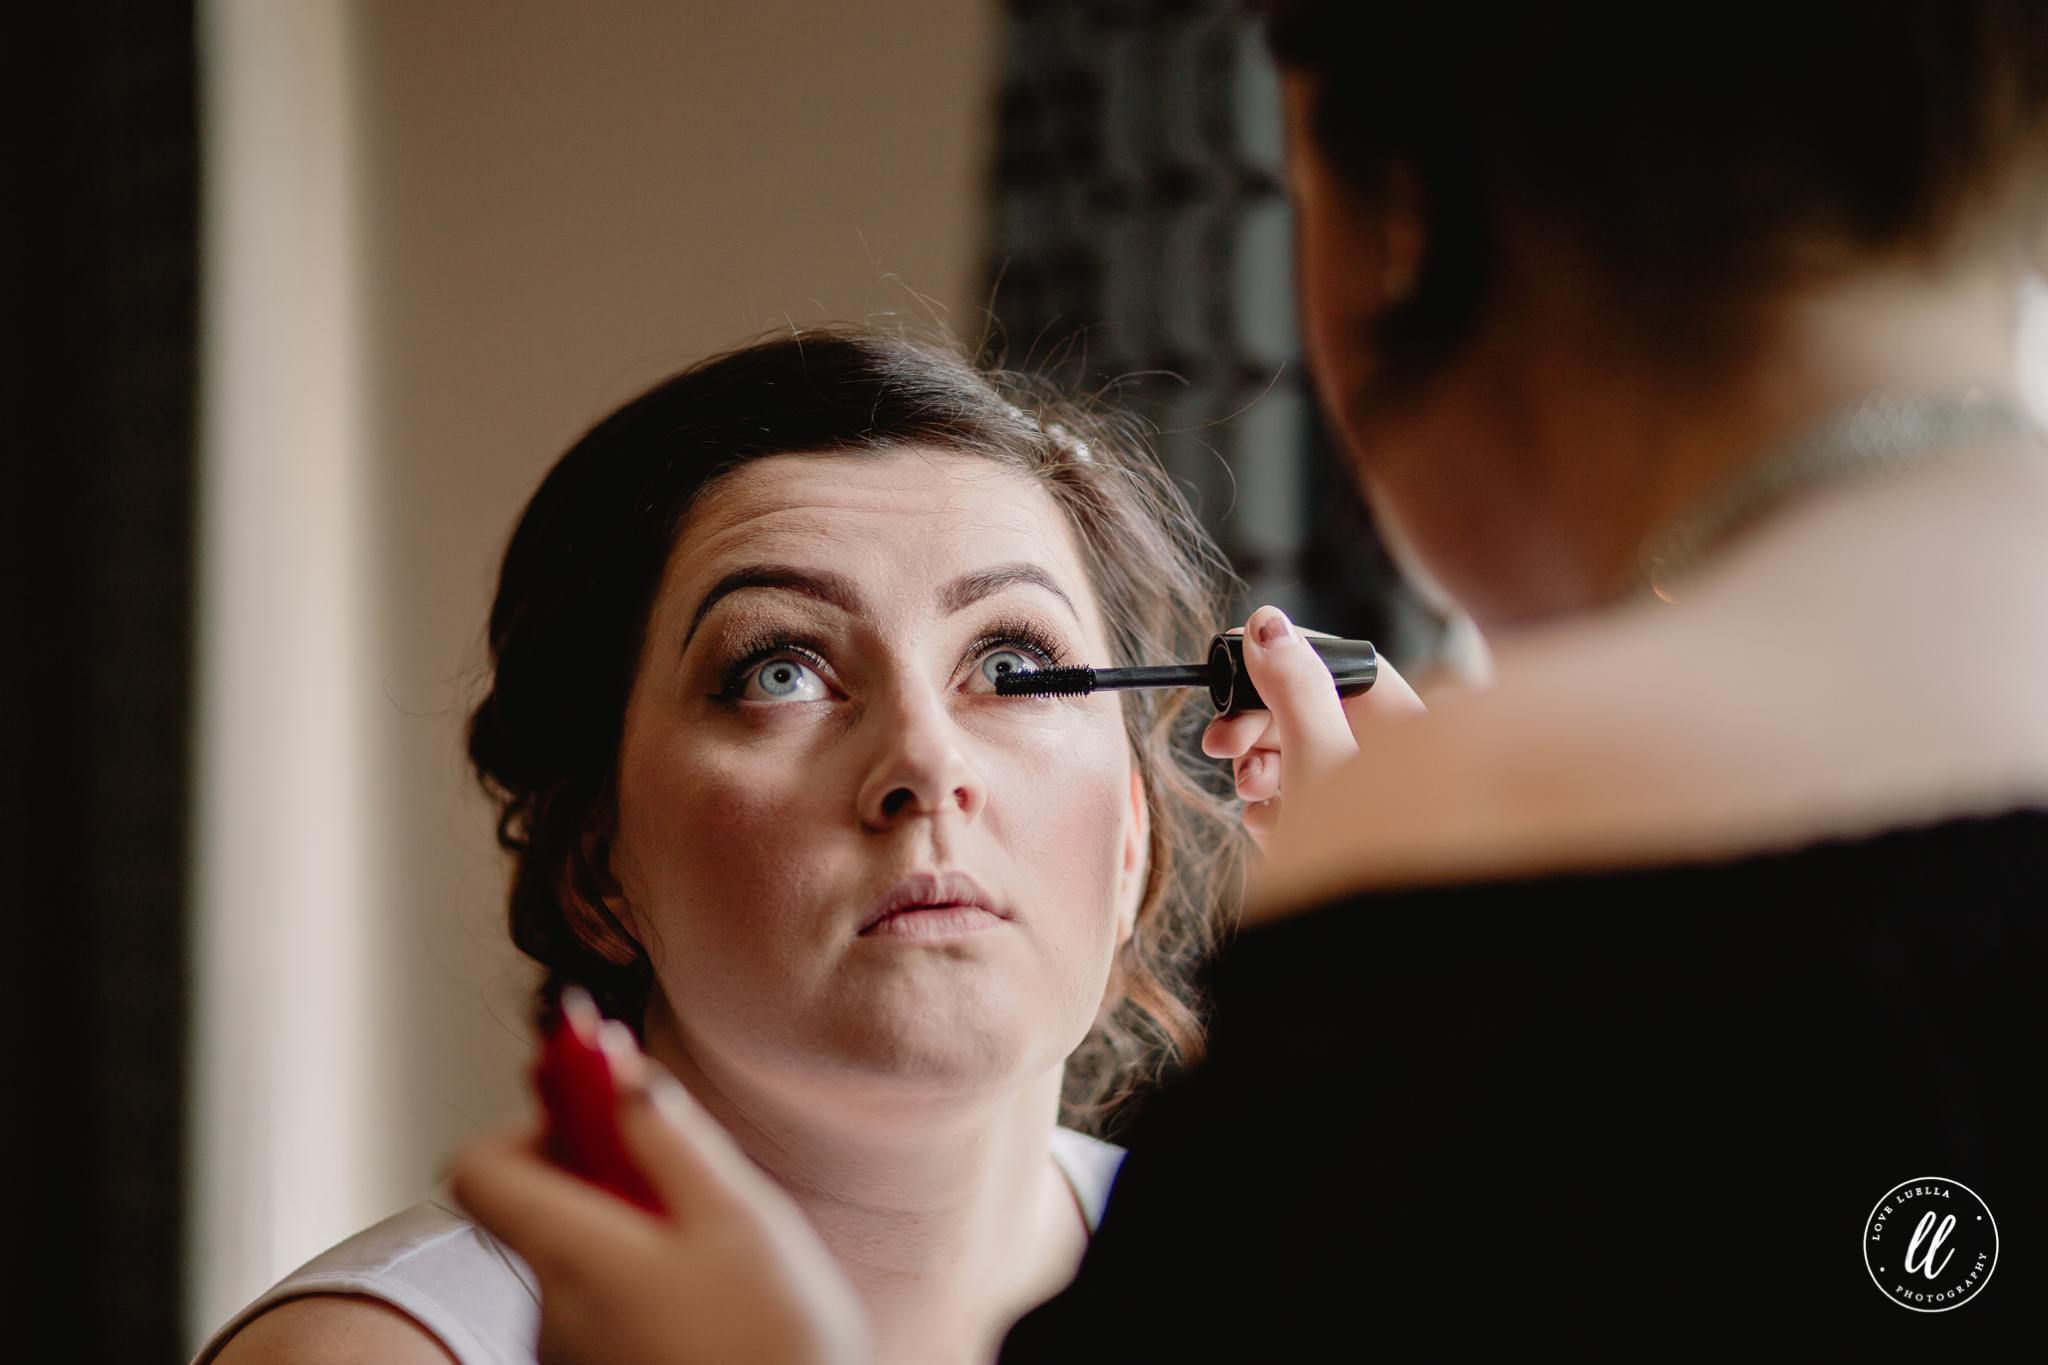 Mascara being applied to the bride near a window at The Kinmel